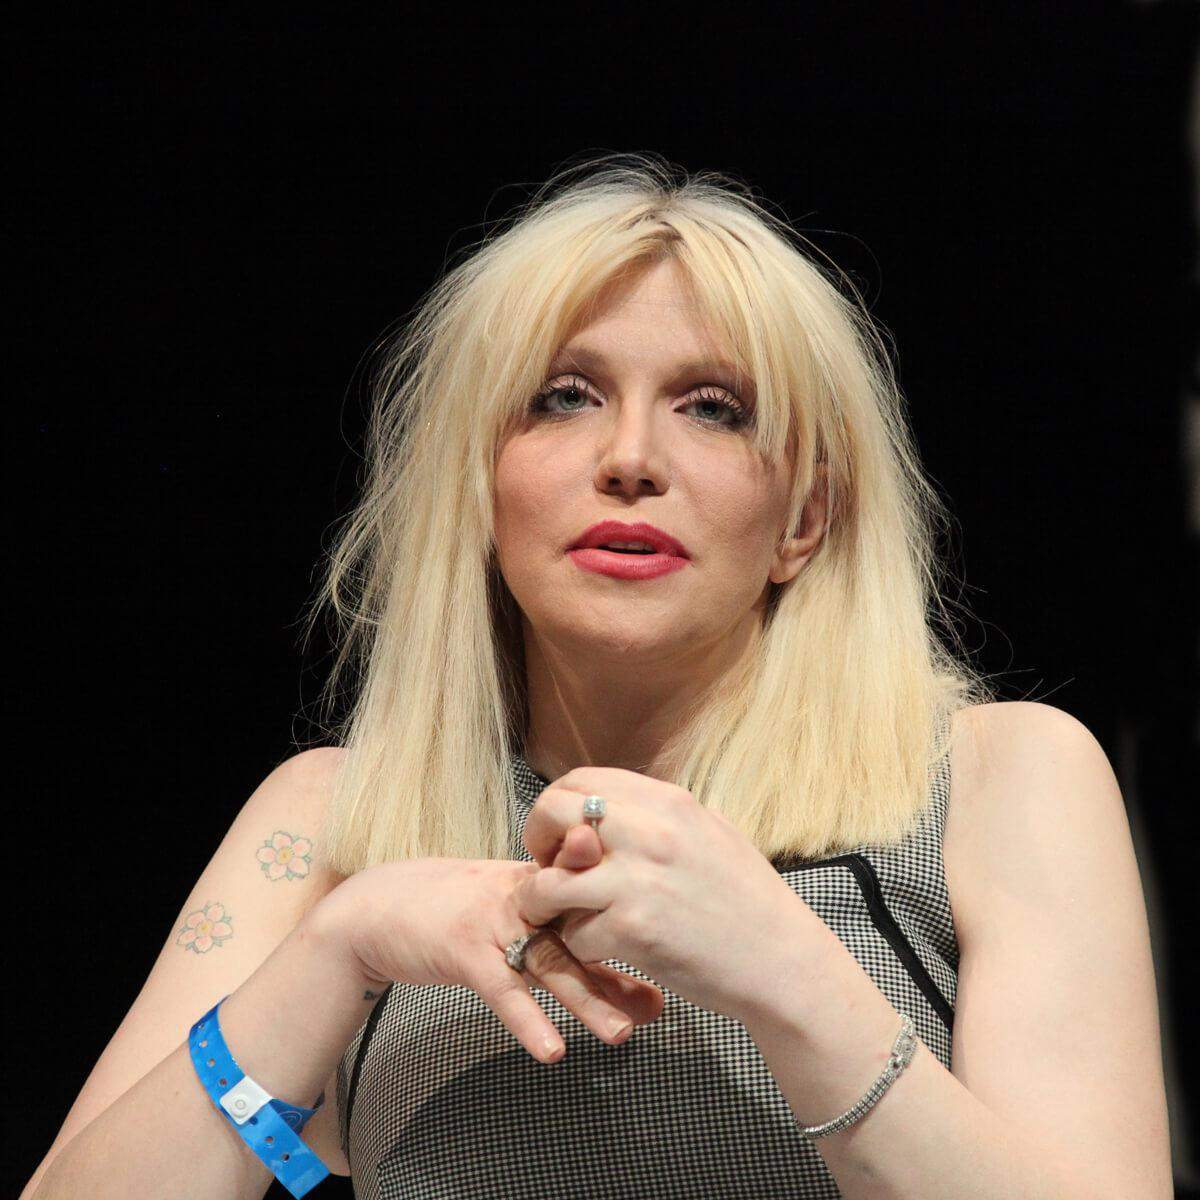 Portrait of Courtney Love by Julian Hanford